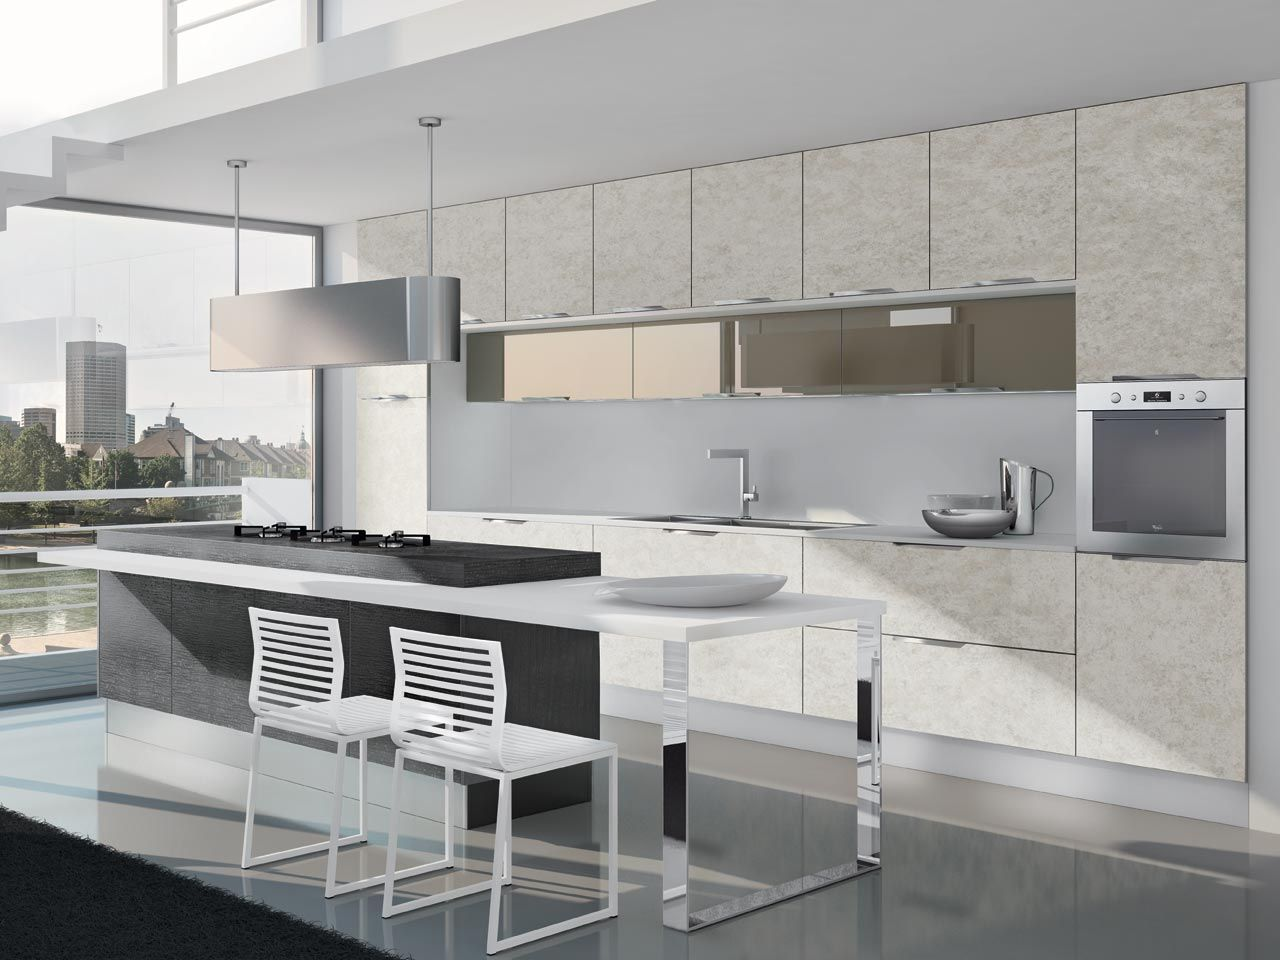 NILDE Gres - Cucina Lube Moderna | Pinterest | Kitchens, Modern and ...